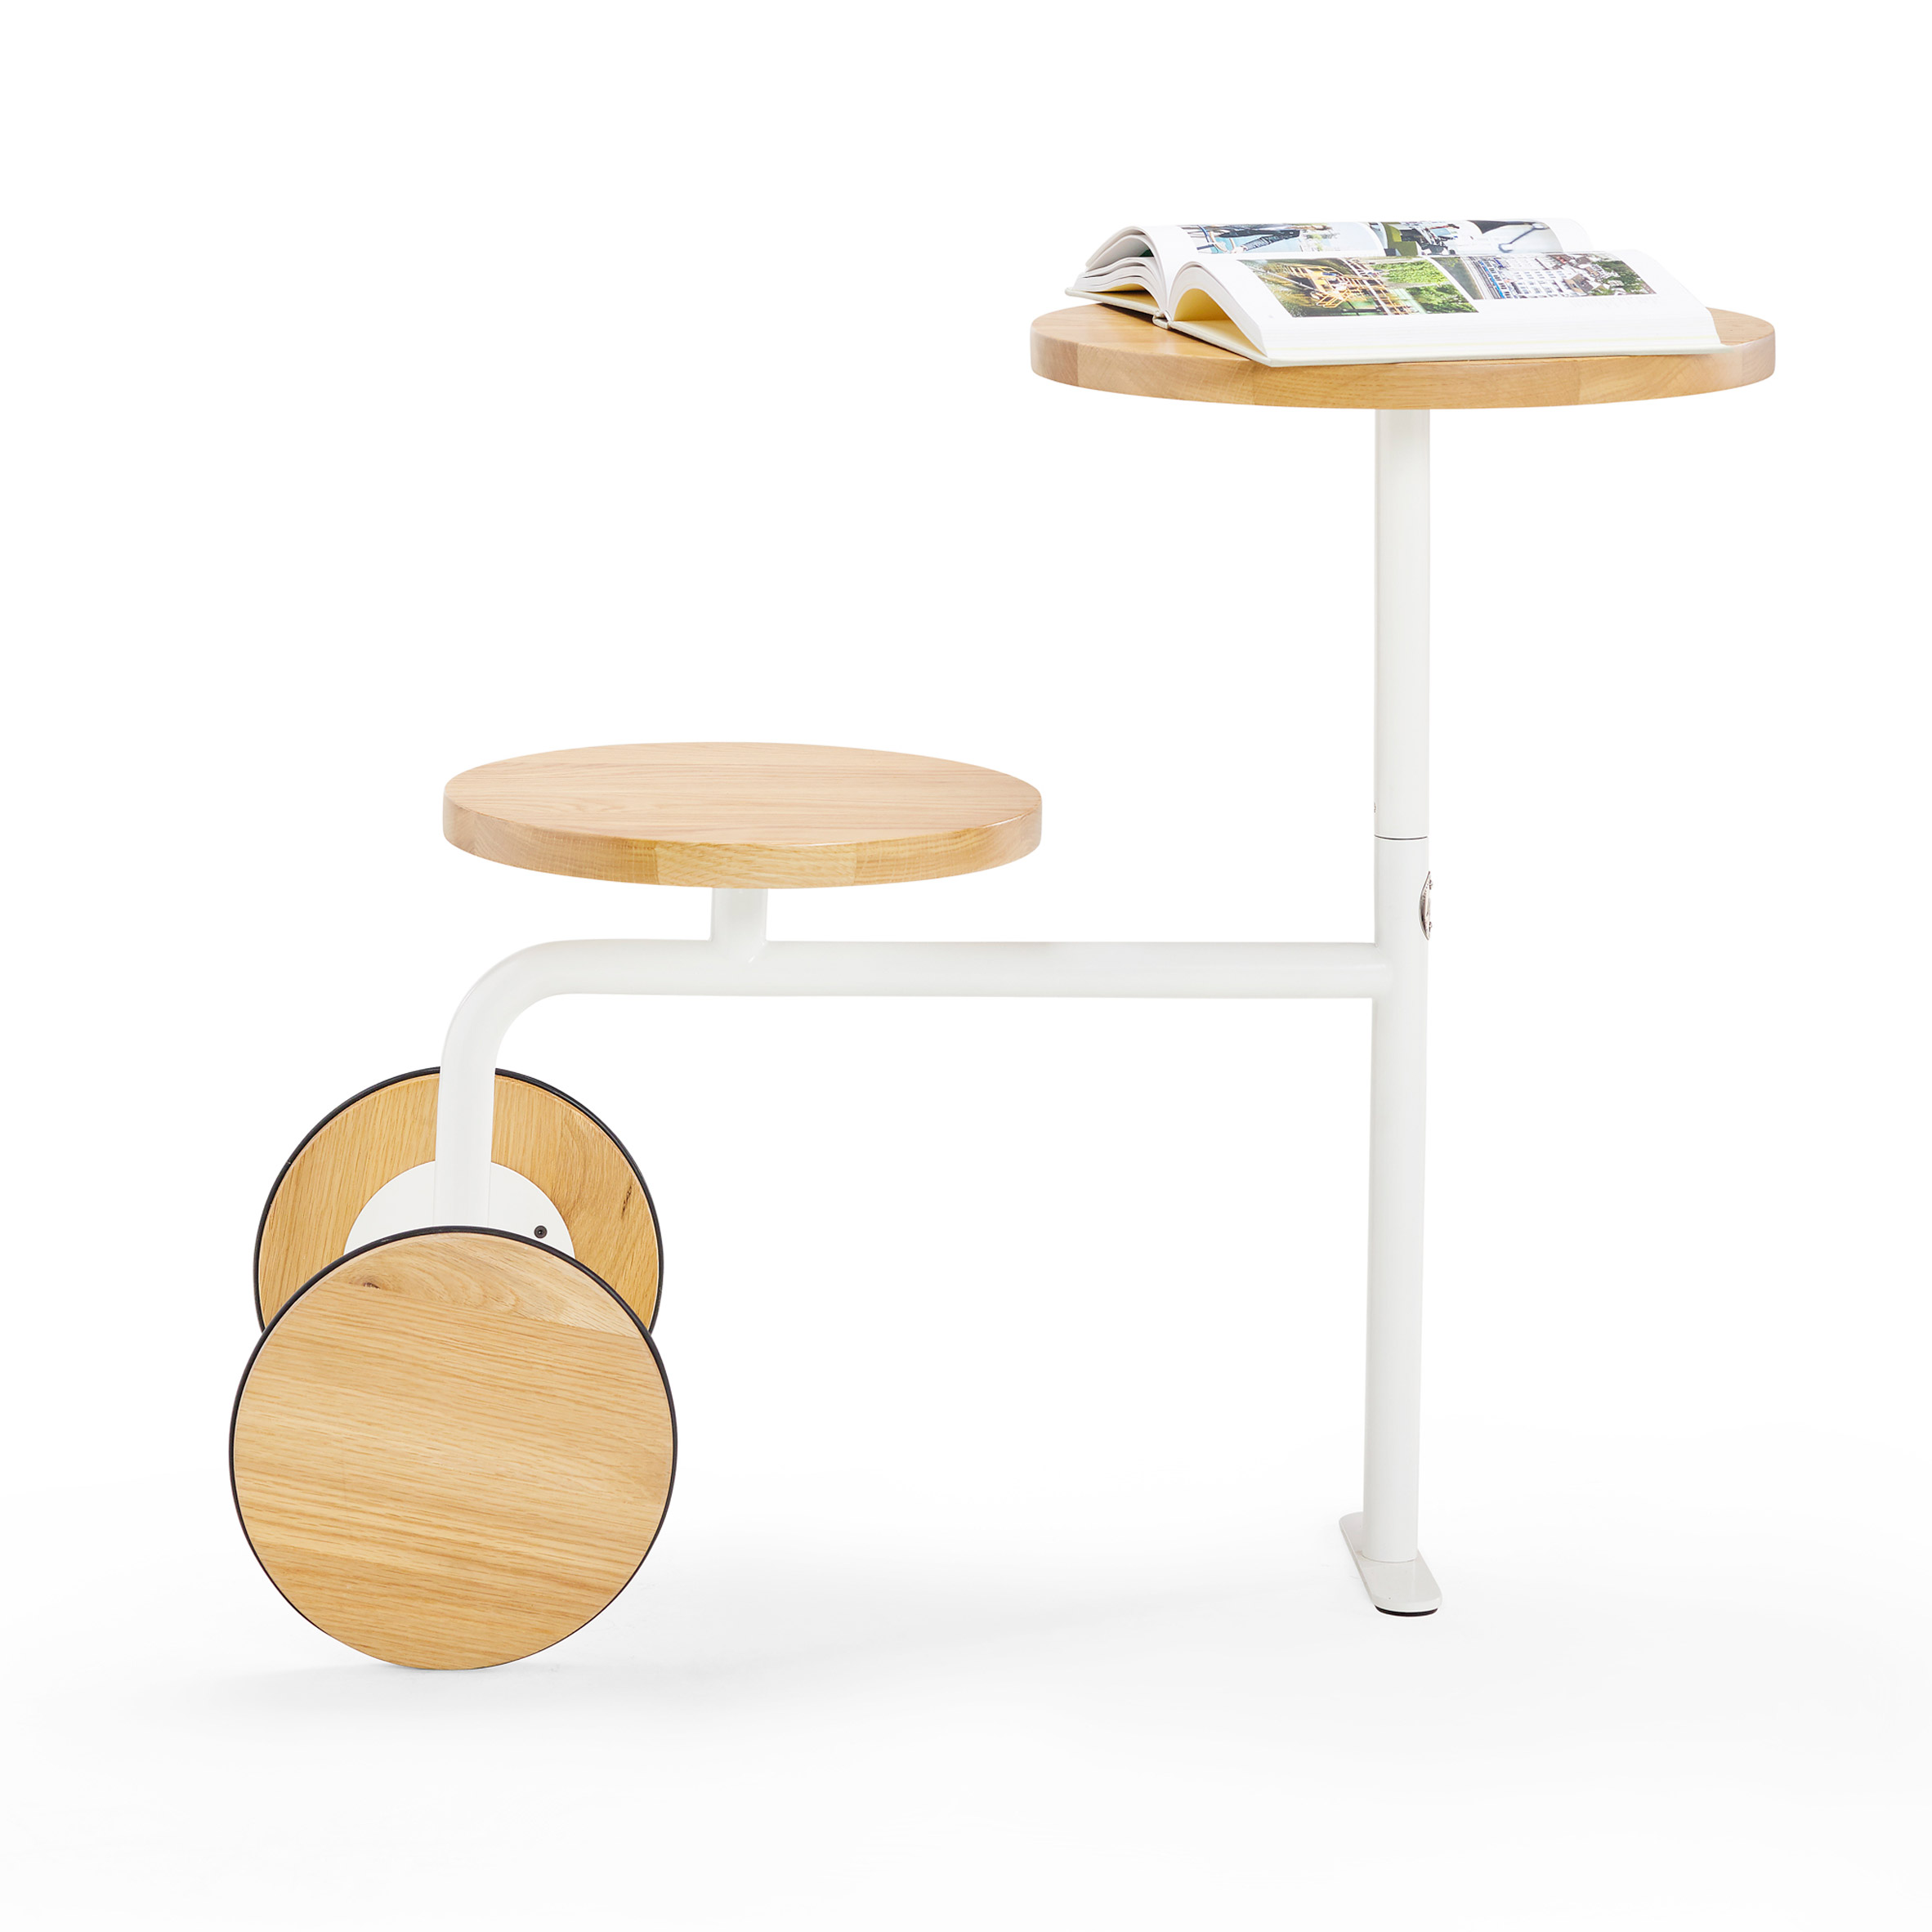 les-basic-alexander-lotersztain-design-furniture-homeware_dezeen_2364_col_22